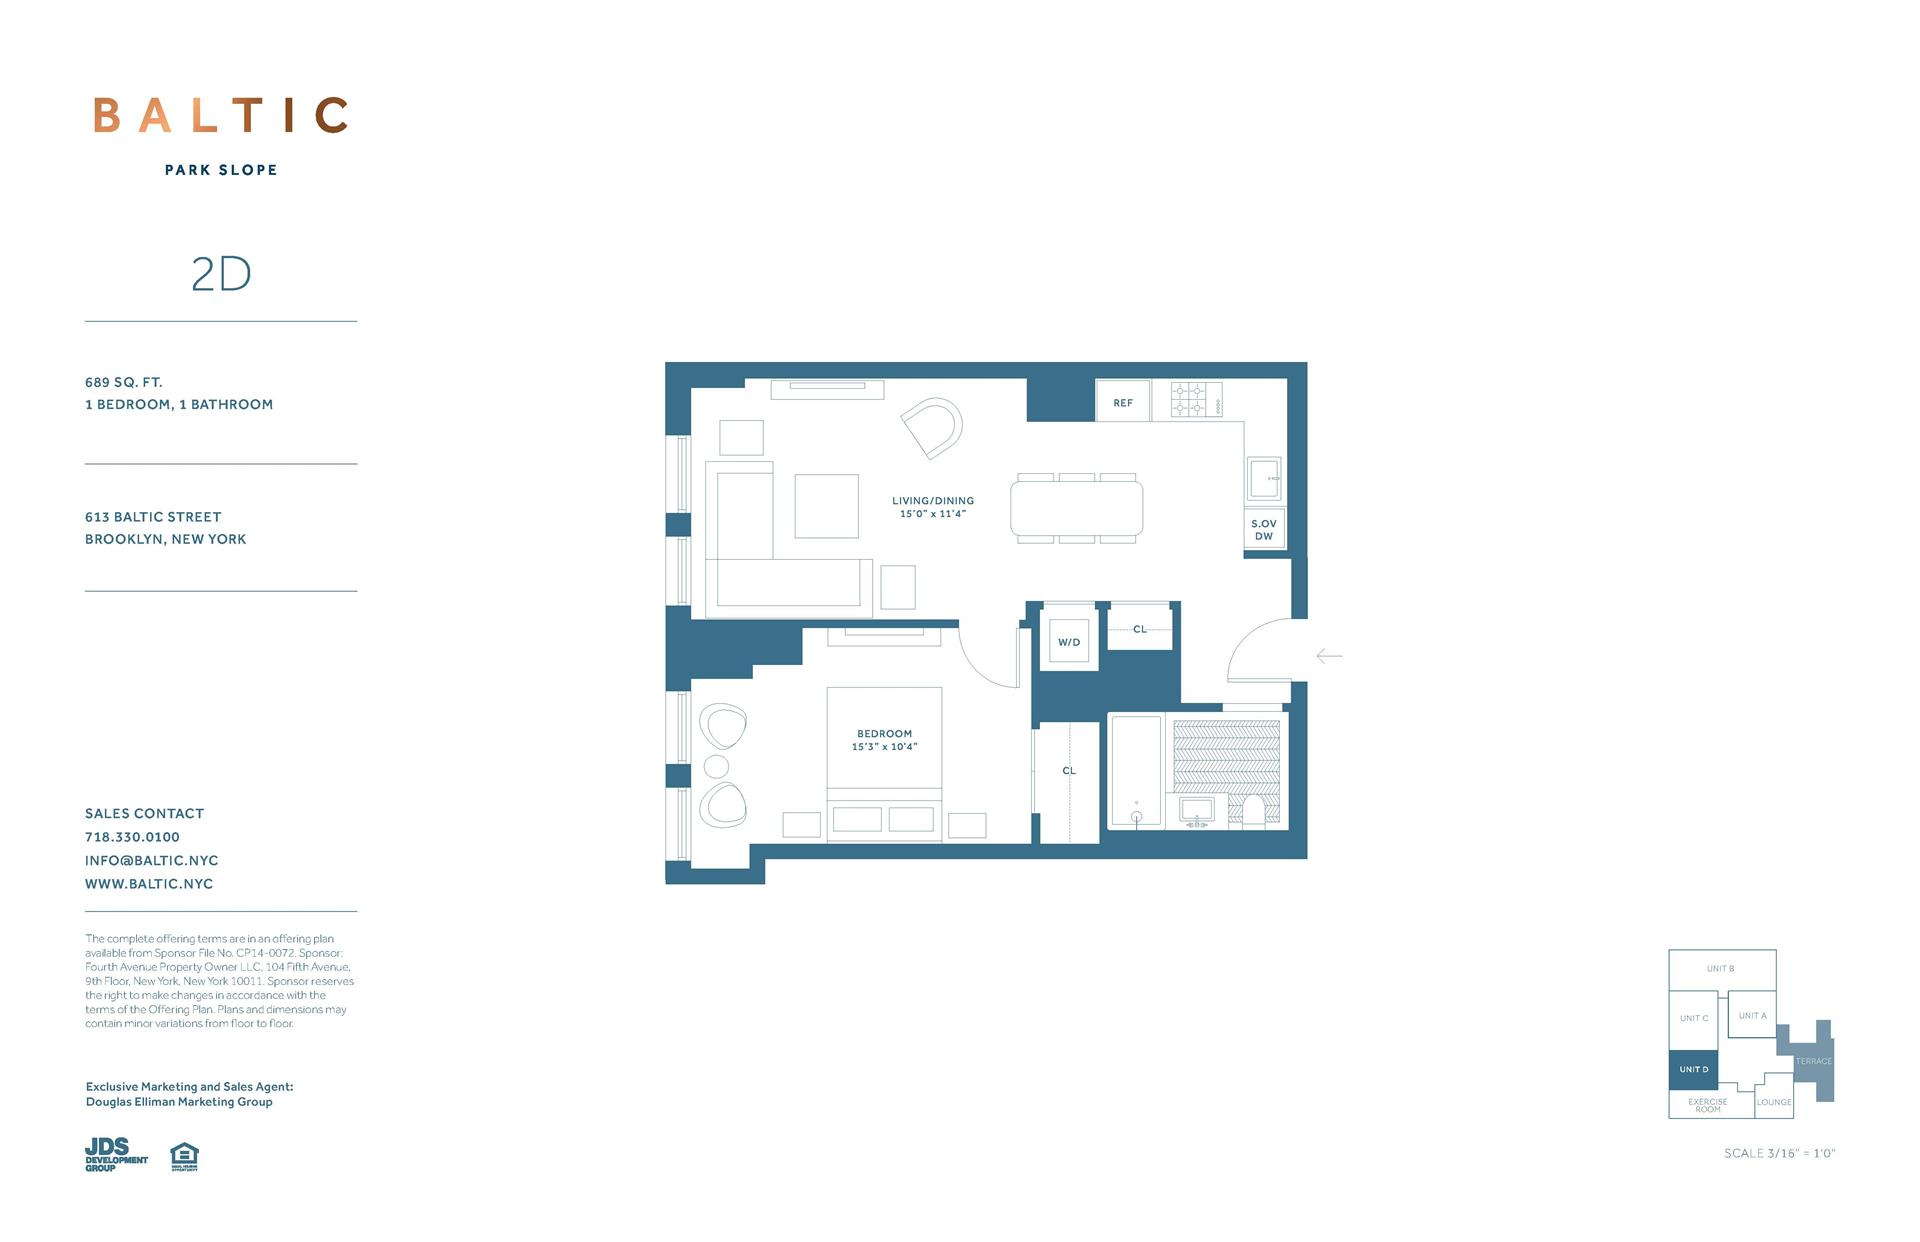 Floor plan of 613 Baltic St, 2D - Park Slope, New York